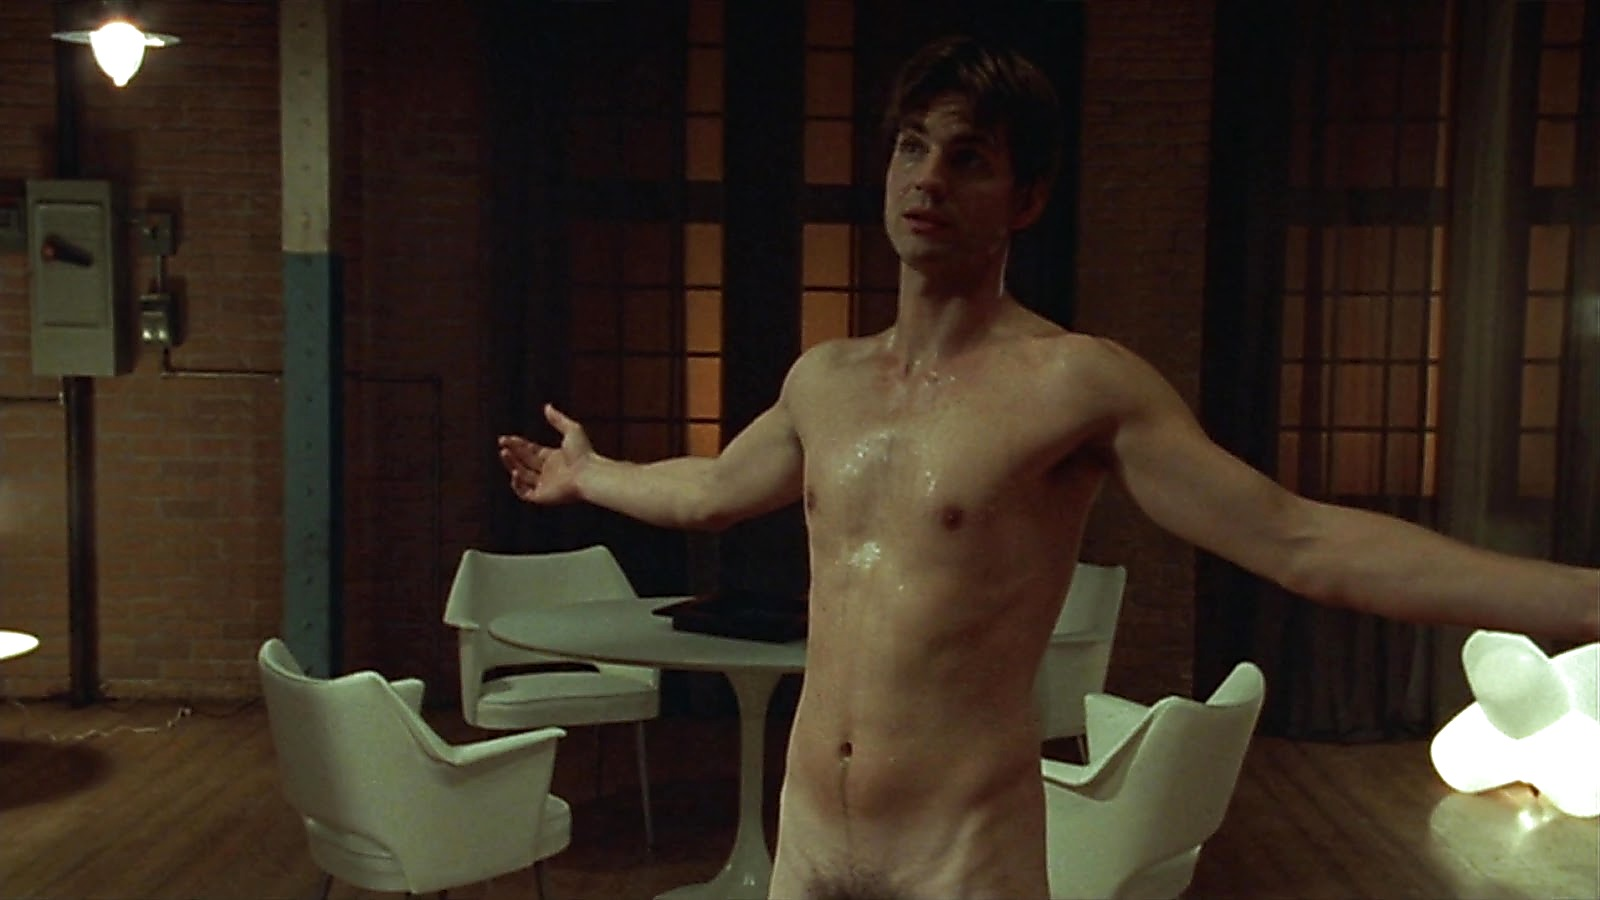 Gale Harold sexy shirtless scene May 3, 2019, 12pm